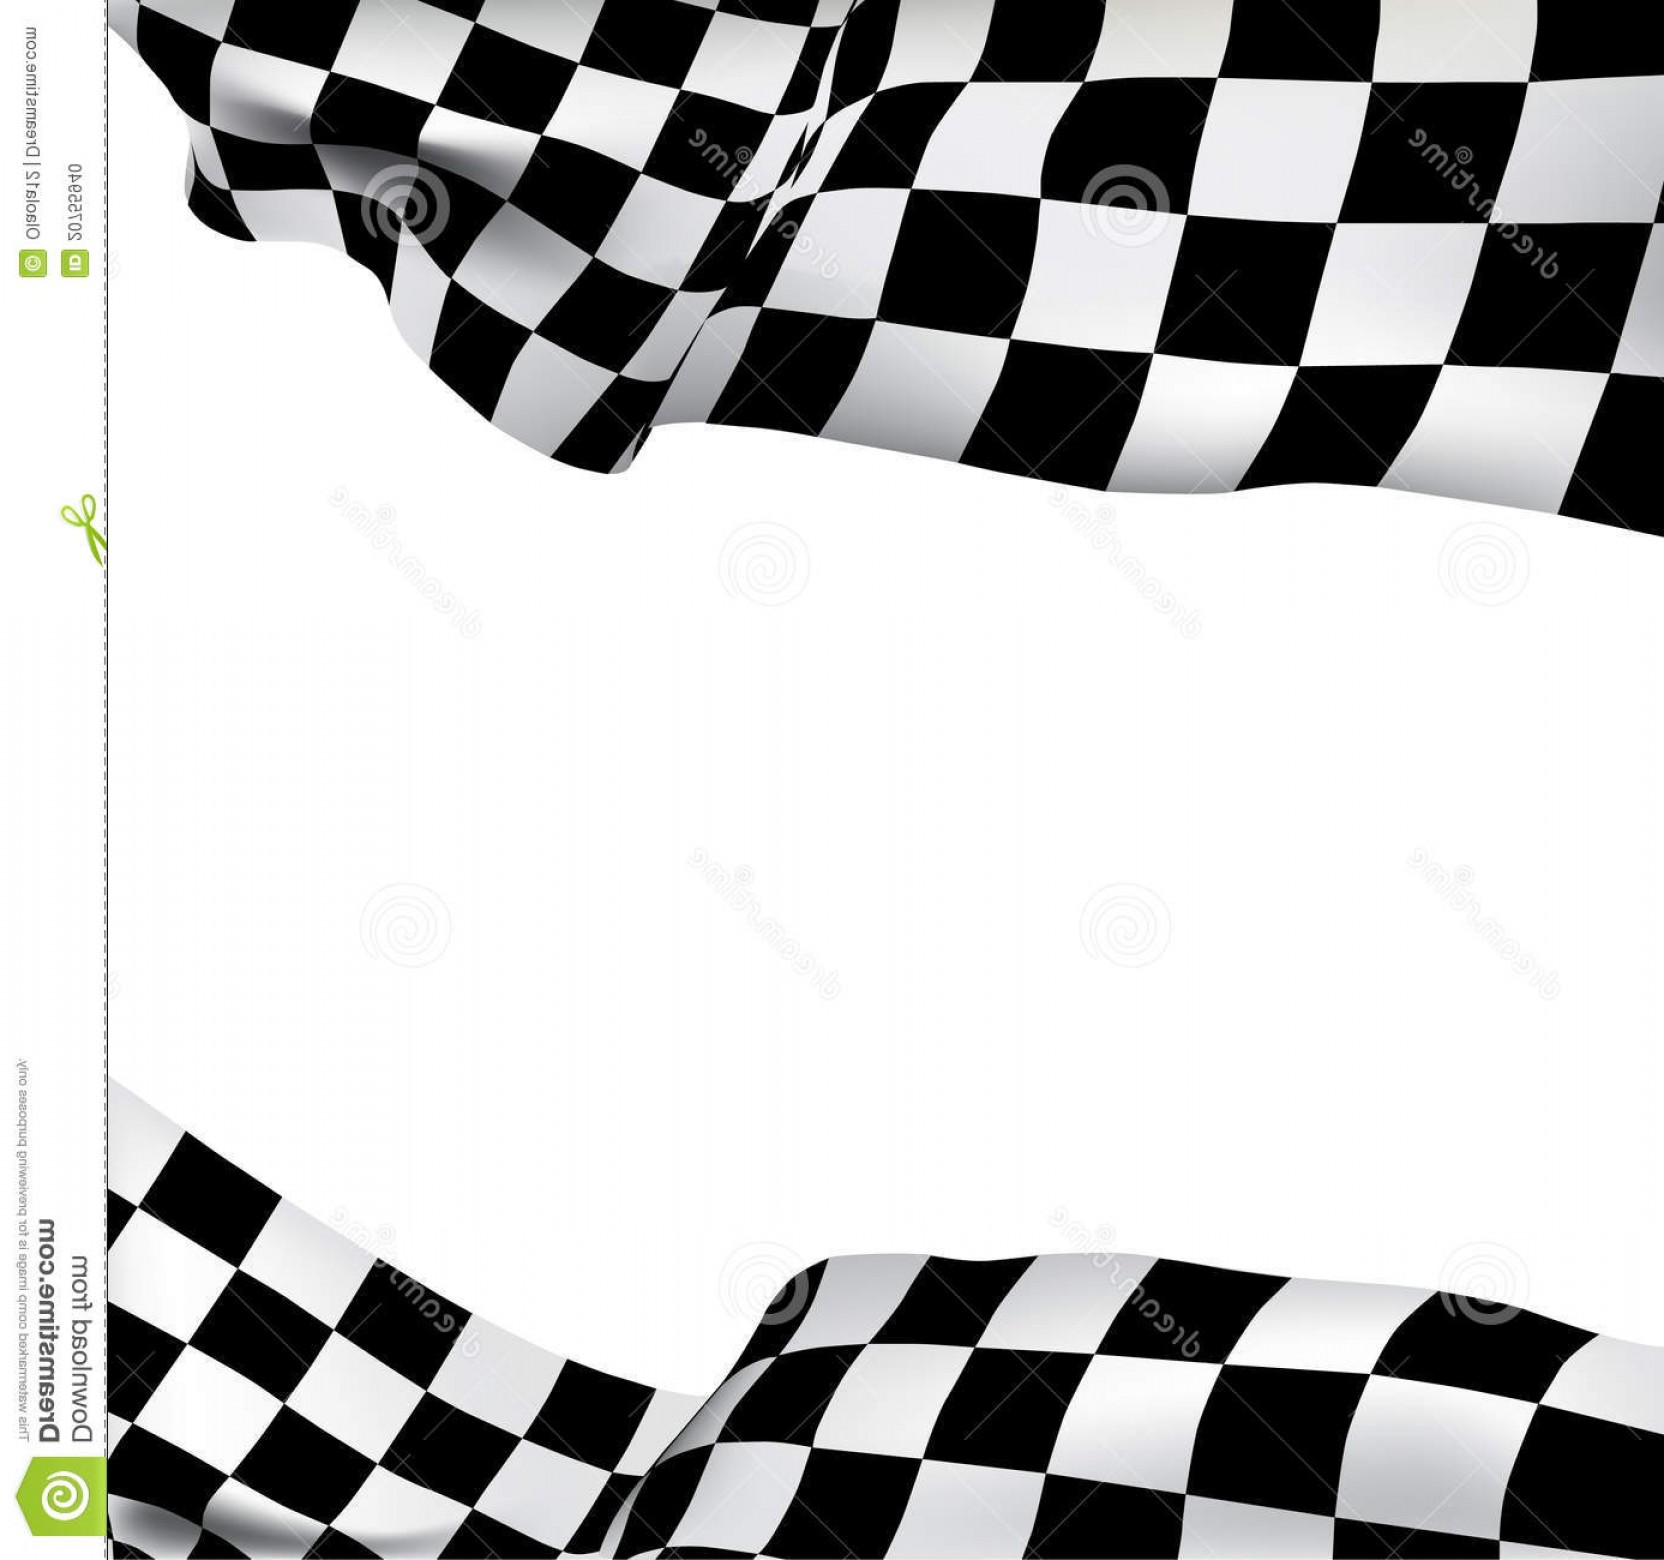 Checkered Flag Background Vector: Stock Photo Background Checkered Flag Image